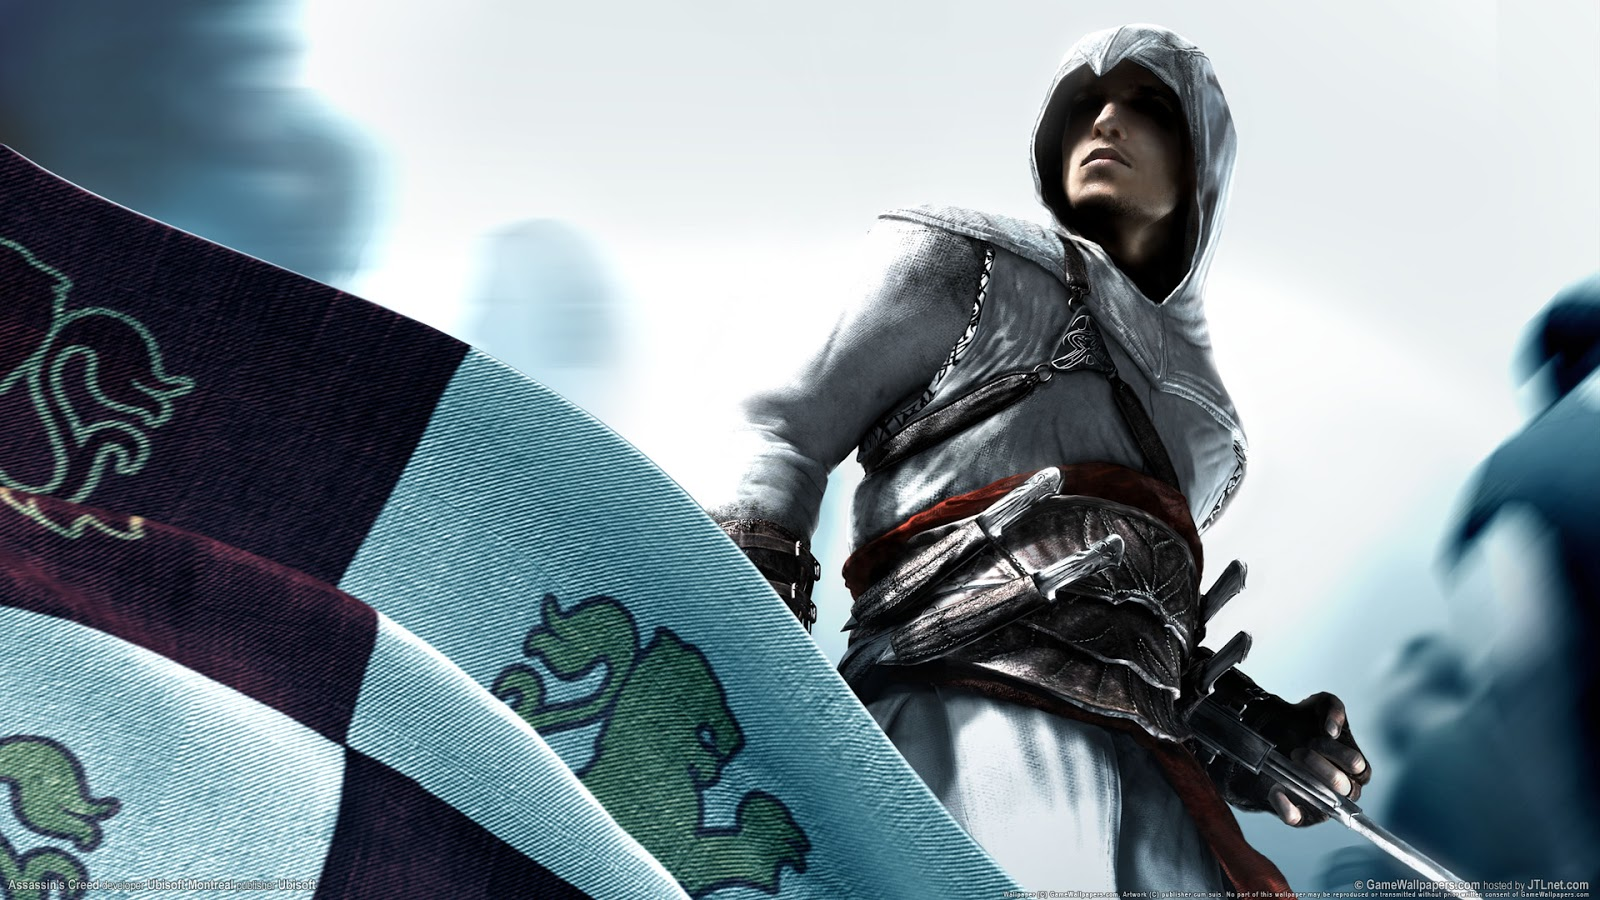 Windows 8 Hd Wallpaper 2013 Assassins Creed Game Hd Wallpapers